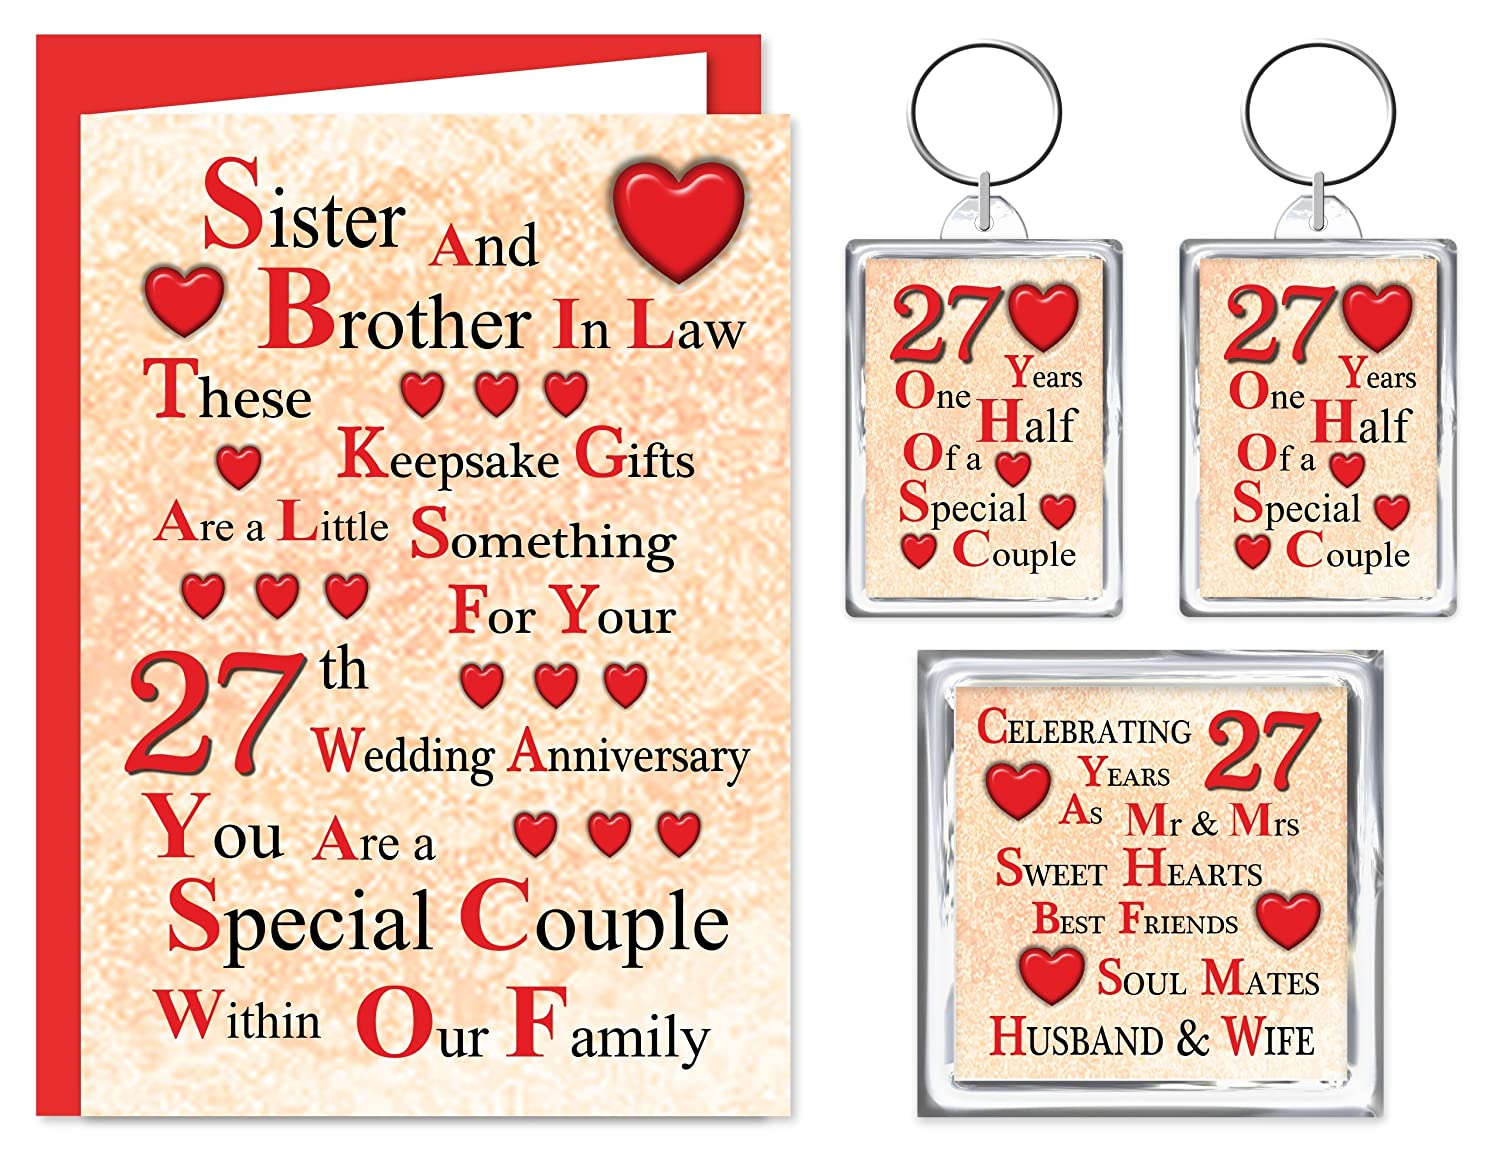 Wedding Gifts For Sister And Brother In Law: Unique Anniversary Gift For Sister And Brother In Law